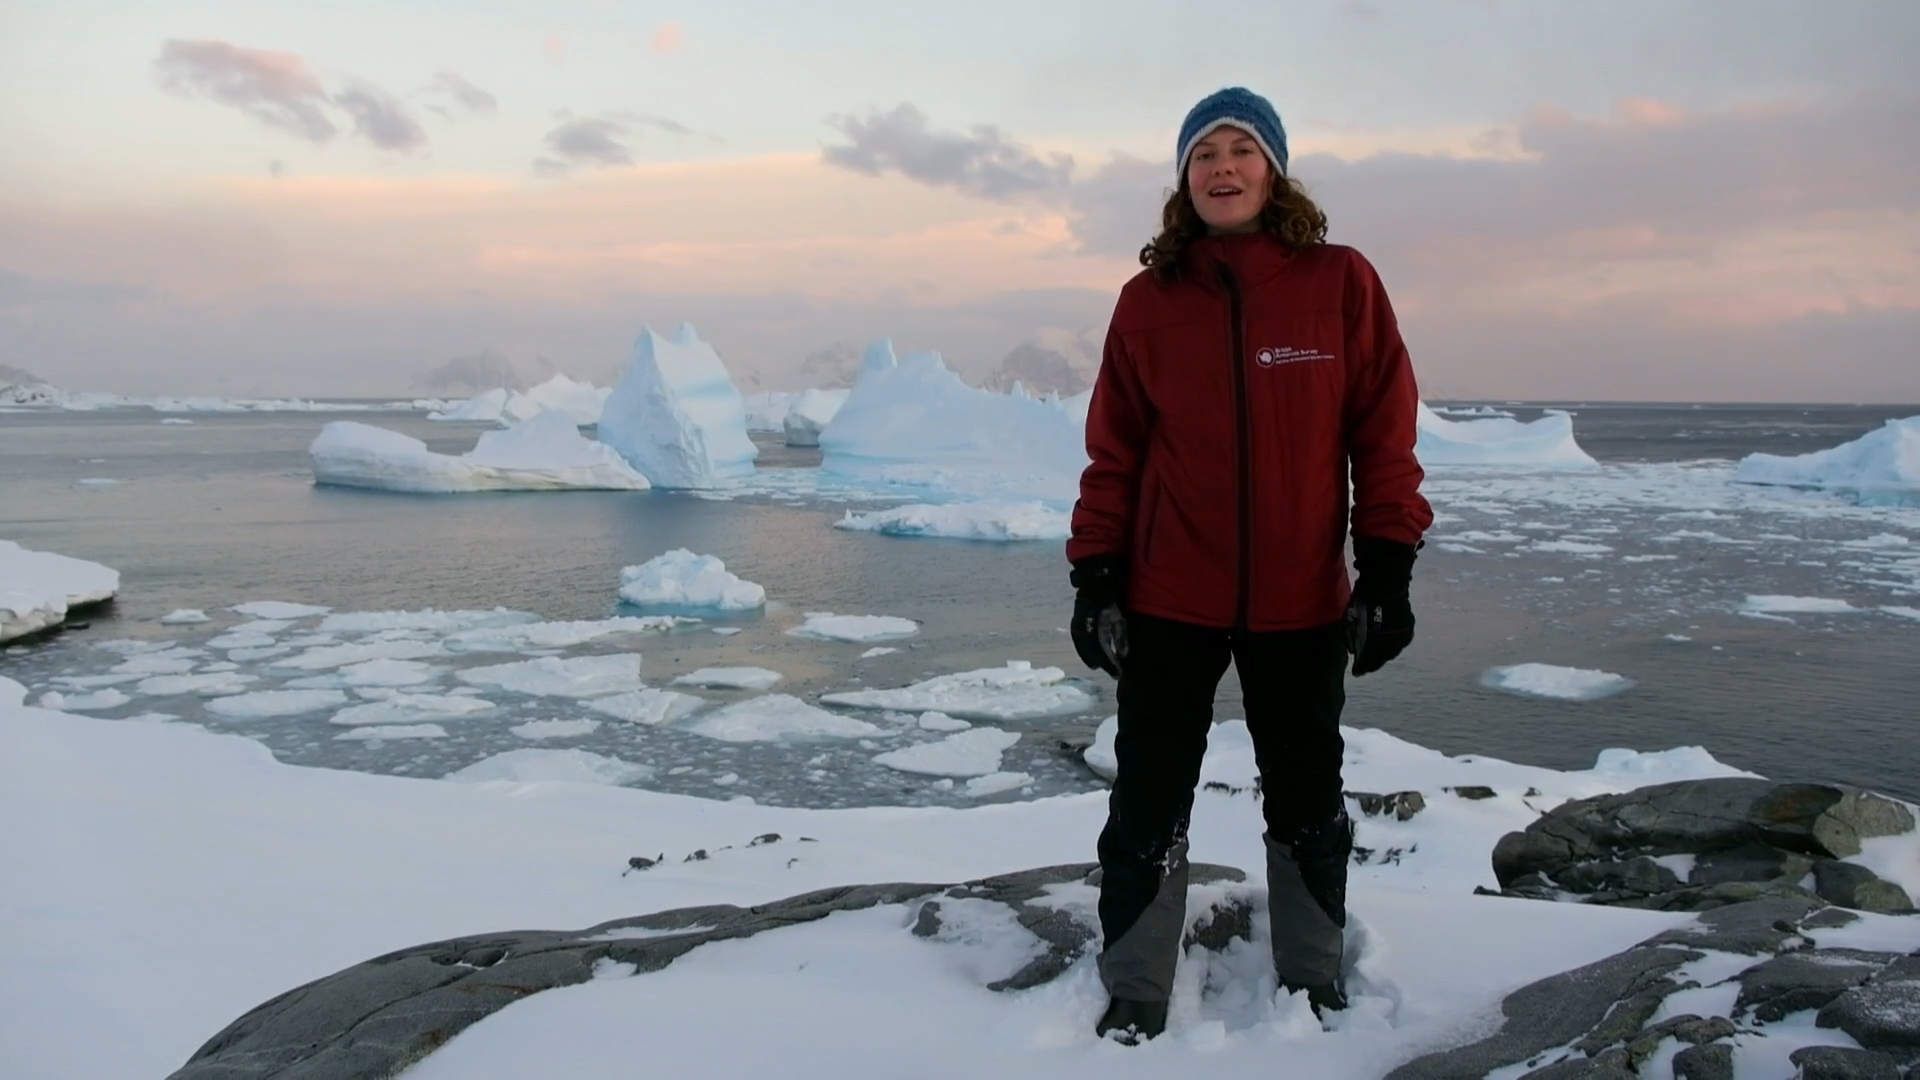 Antarctica marine biologist: 'It's not the earth that needs saving, it's us as humans' - channel 4